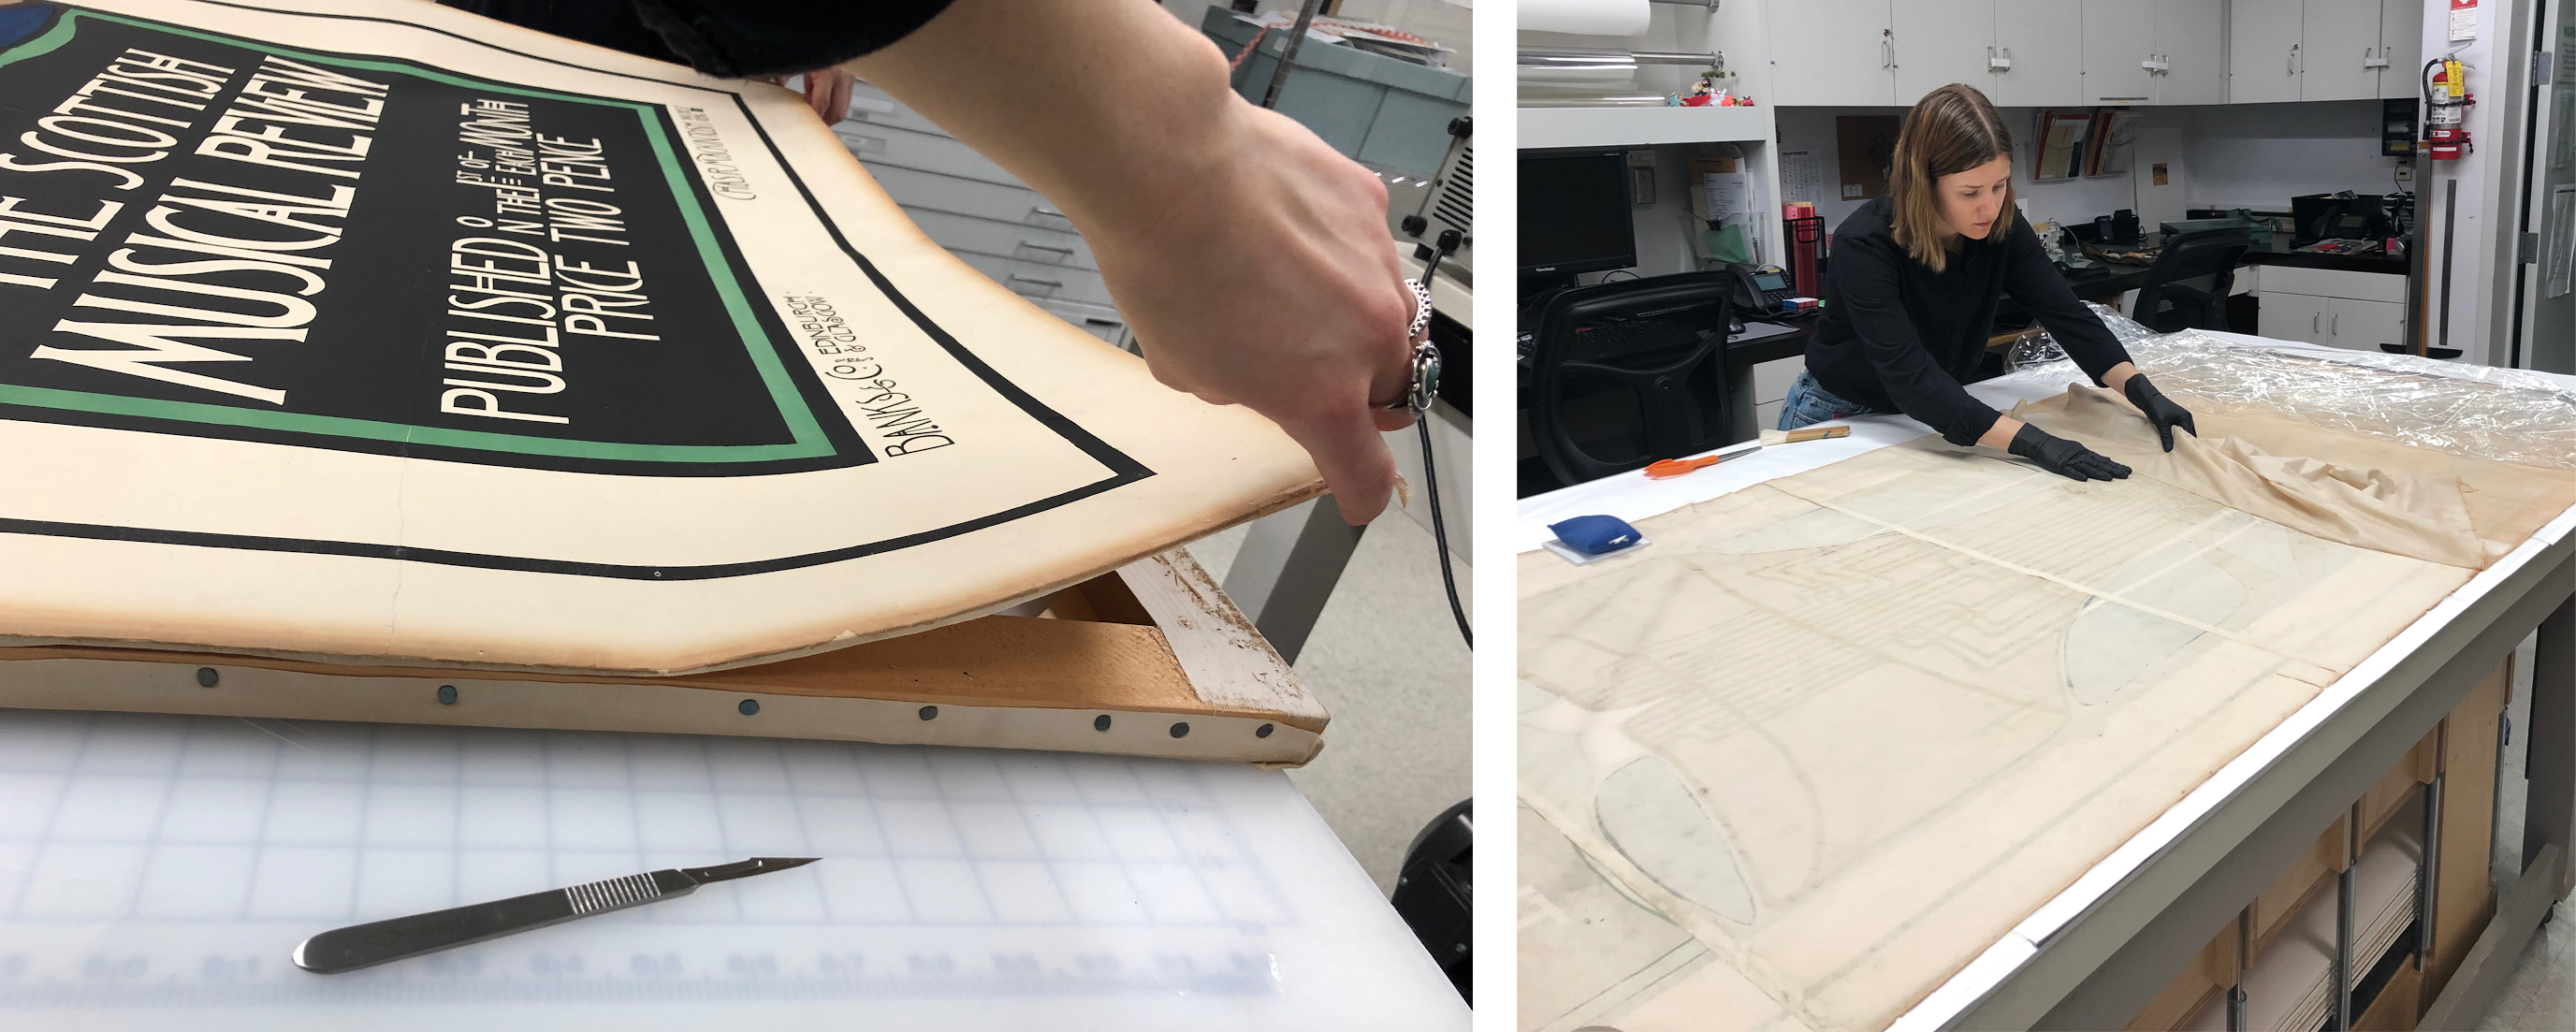 Left: Cutting the lining away from the wooden strainer, image courtesy of Madison Brockman; Right: Removing the damp textile lining, image courtesy of Soko Furuhata